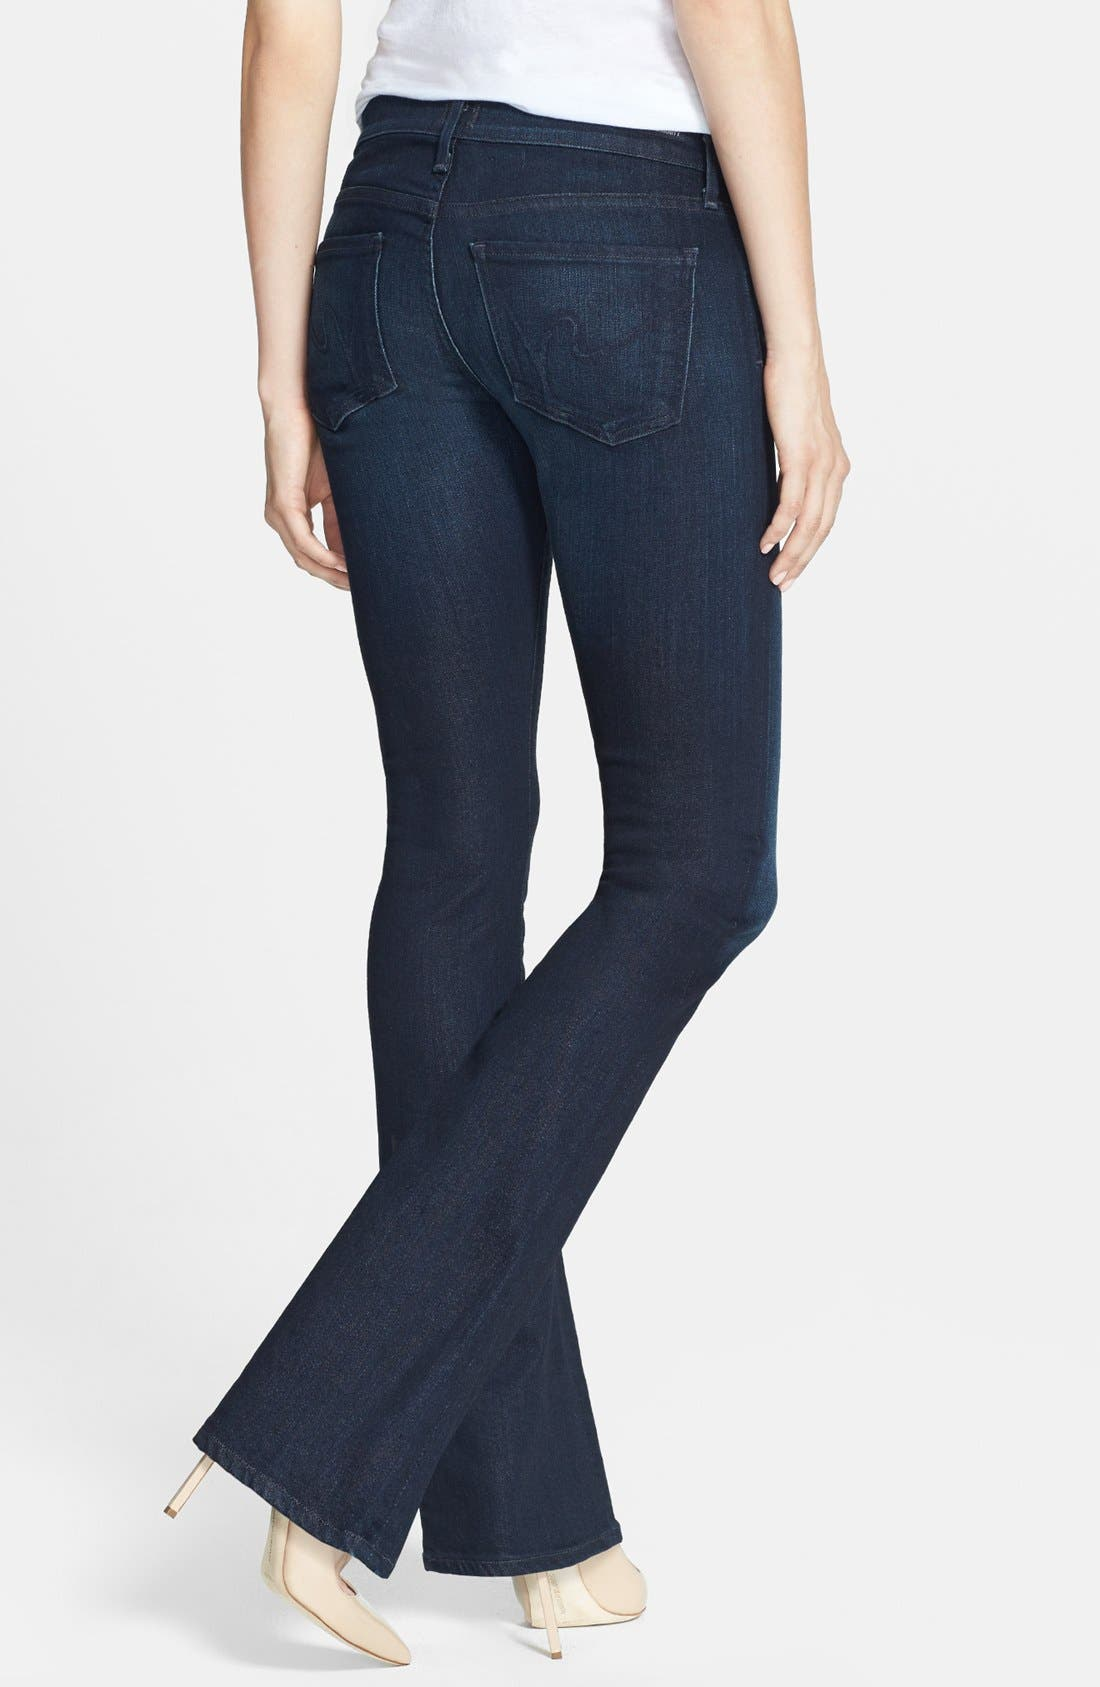 Alternate Image 2  - Citizens of Humanity 'Emmanuelle' Bootcut Jeans (Space) (Petite)